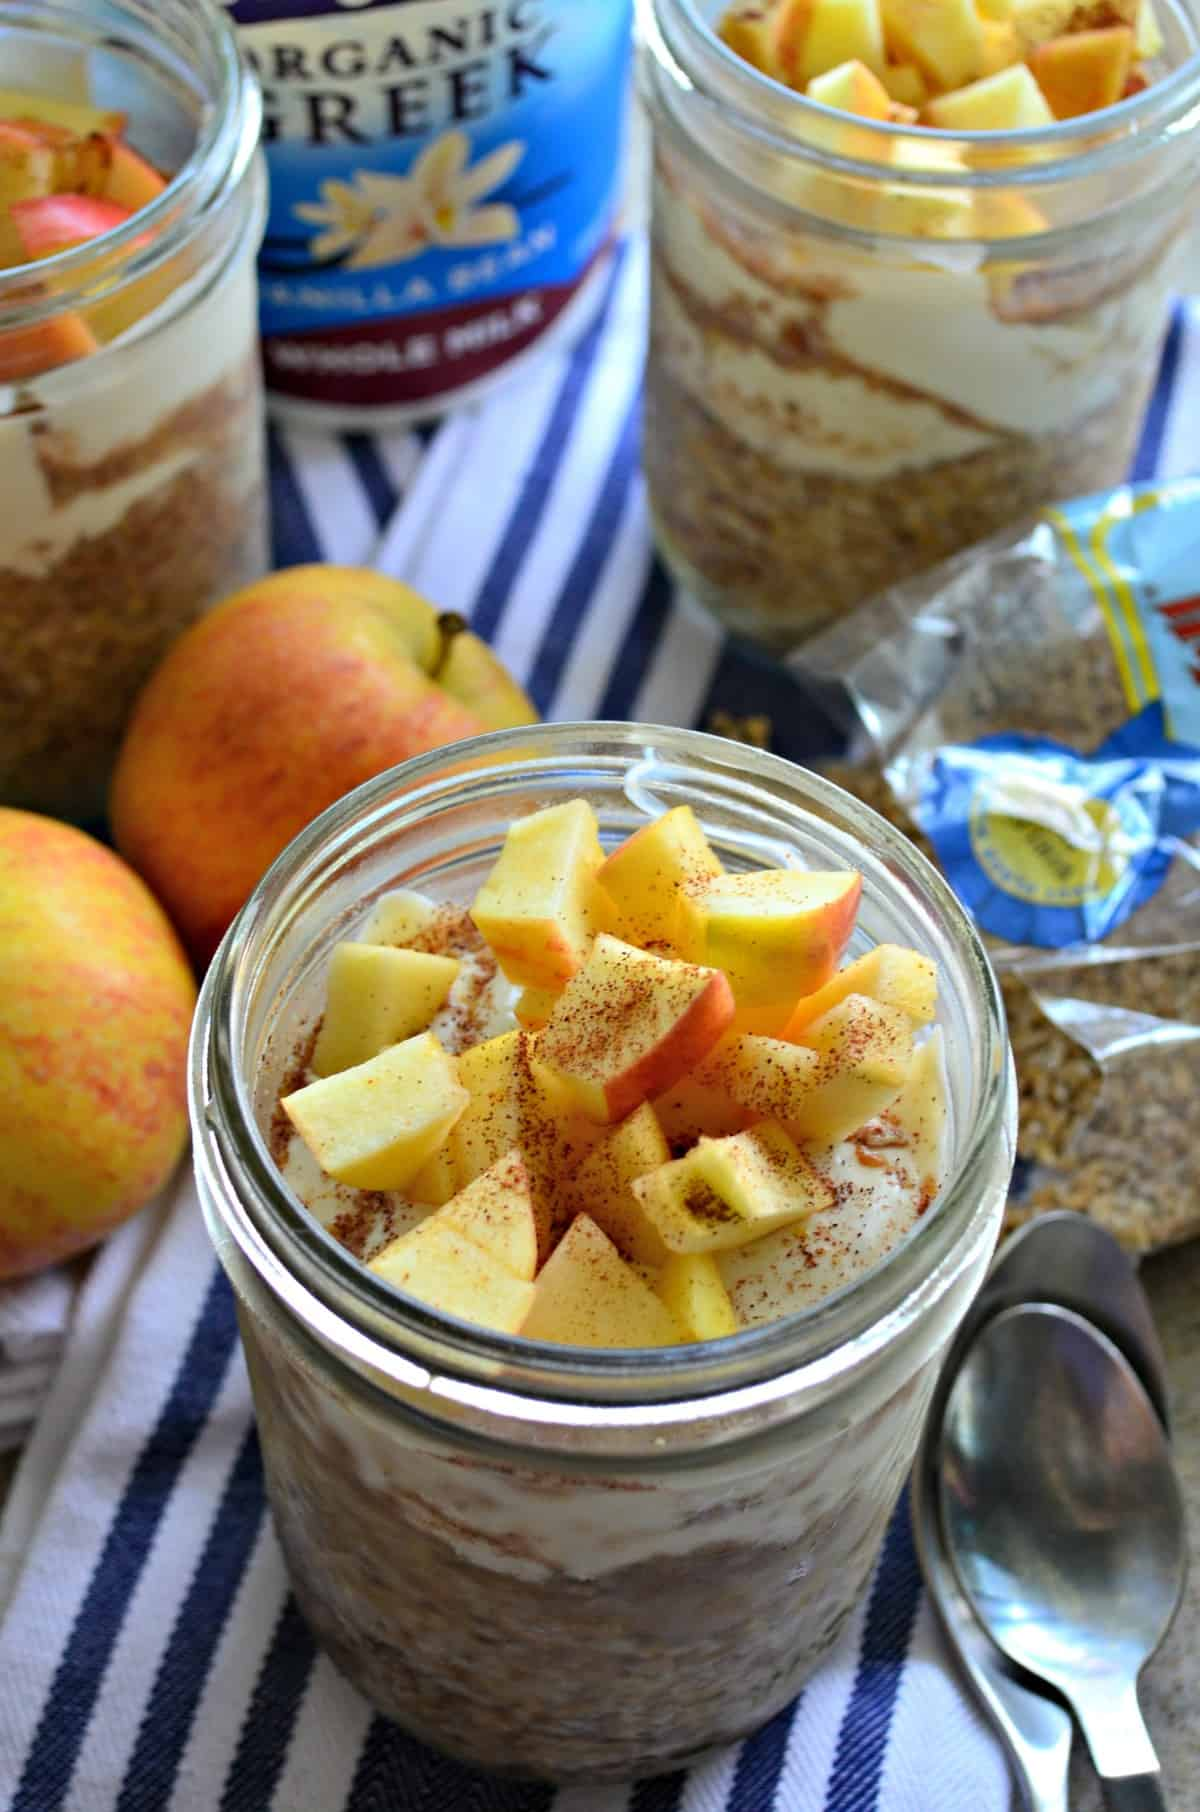 top view of 3 glasses filled with yogurt, oats, and topped with apple slices and cinnamon.